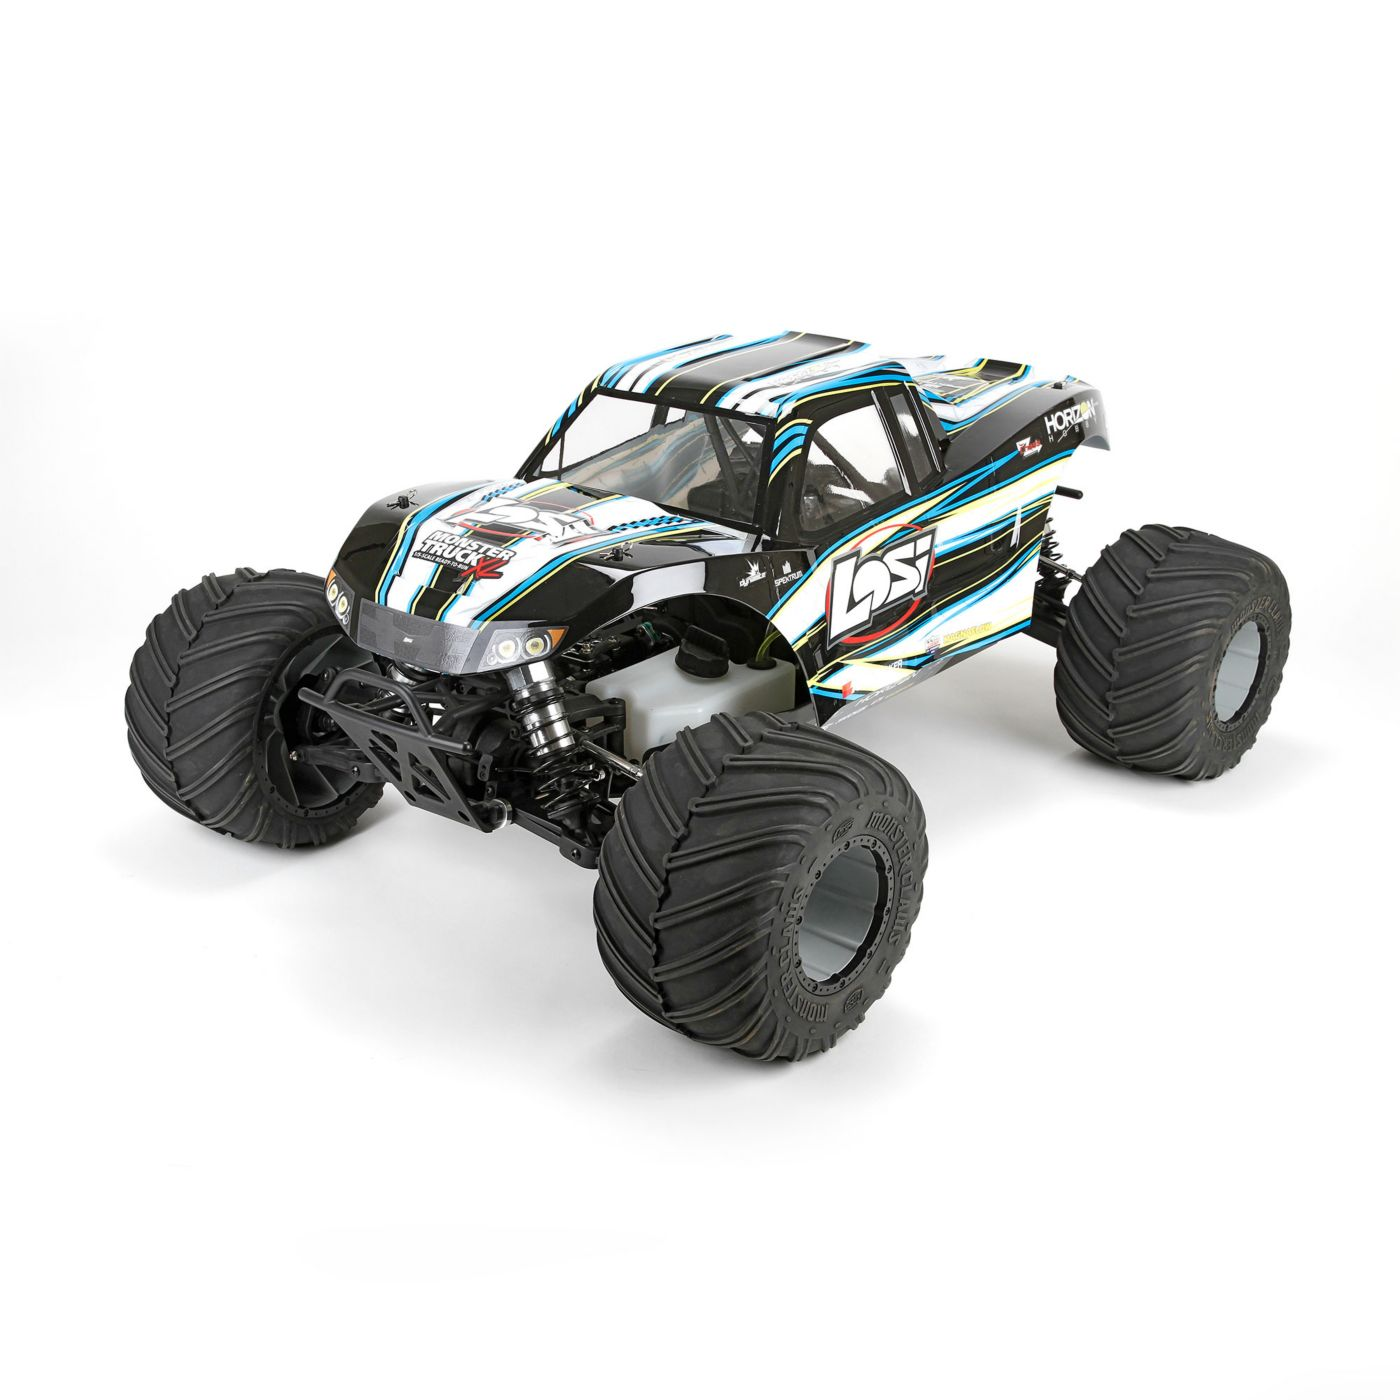 c9aade3d80 Details about Losi 1 5 Monster Truck XL 4 Wheel Drive Gas Ready to Run with  AVC Black